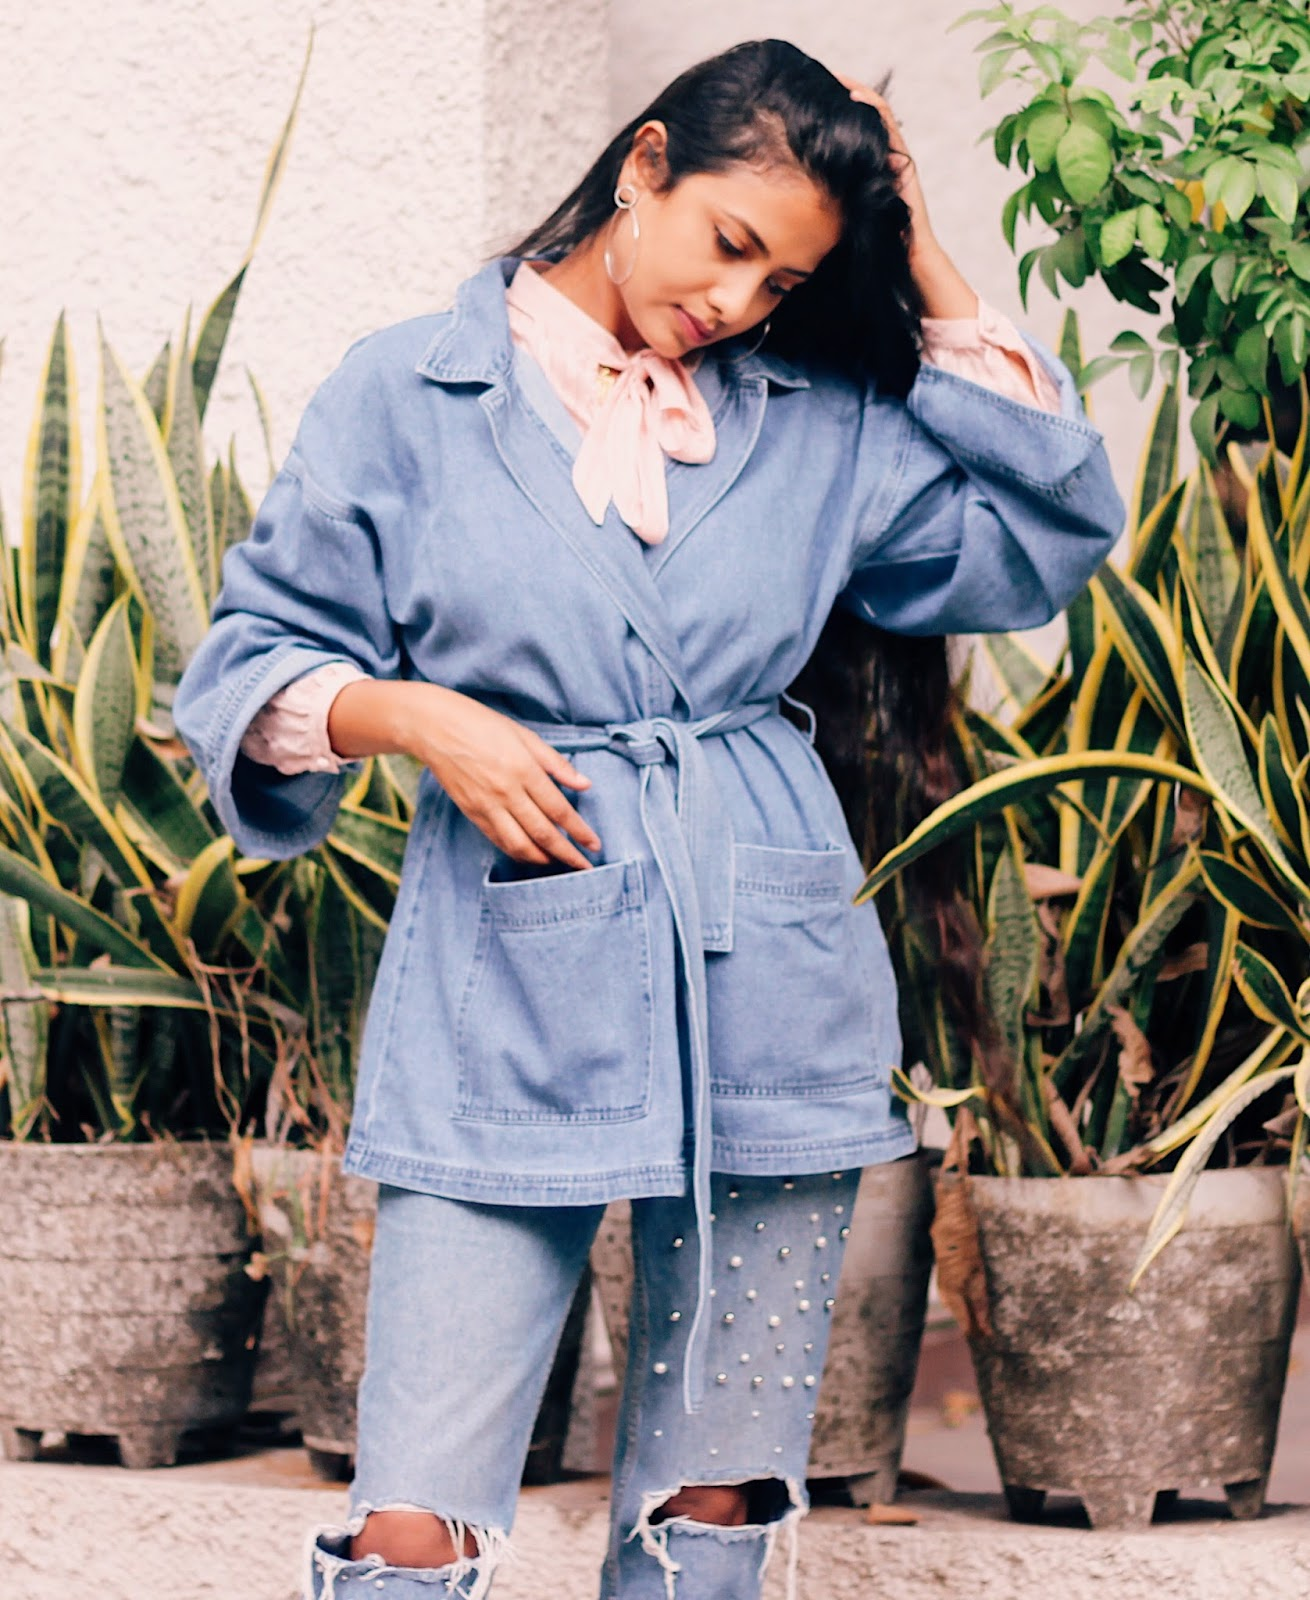 the most doable trends for every girl, denim on denim, monochrome, indian fashion blogger, uk blog, delhi blogger, london blog, effortless style, parisian chic, style kimono, pearl denim, pussy bow blouse, weekend outfit, lookbook, autumn fashion, european street style, london street style 2017